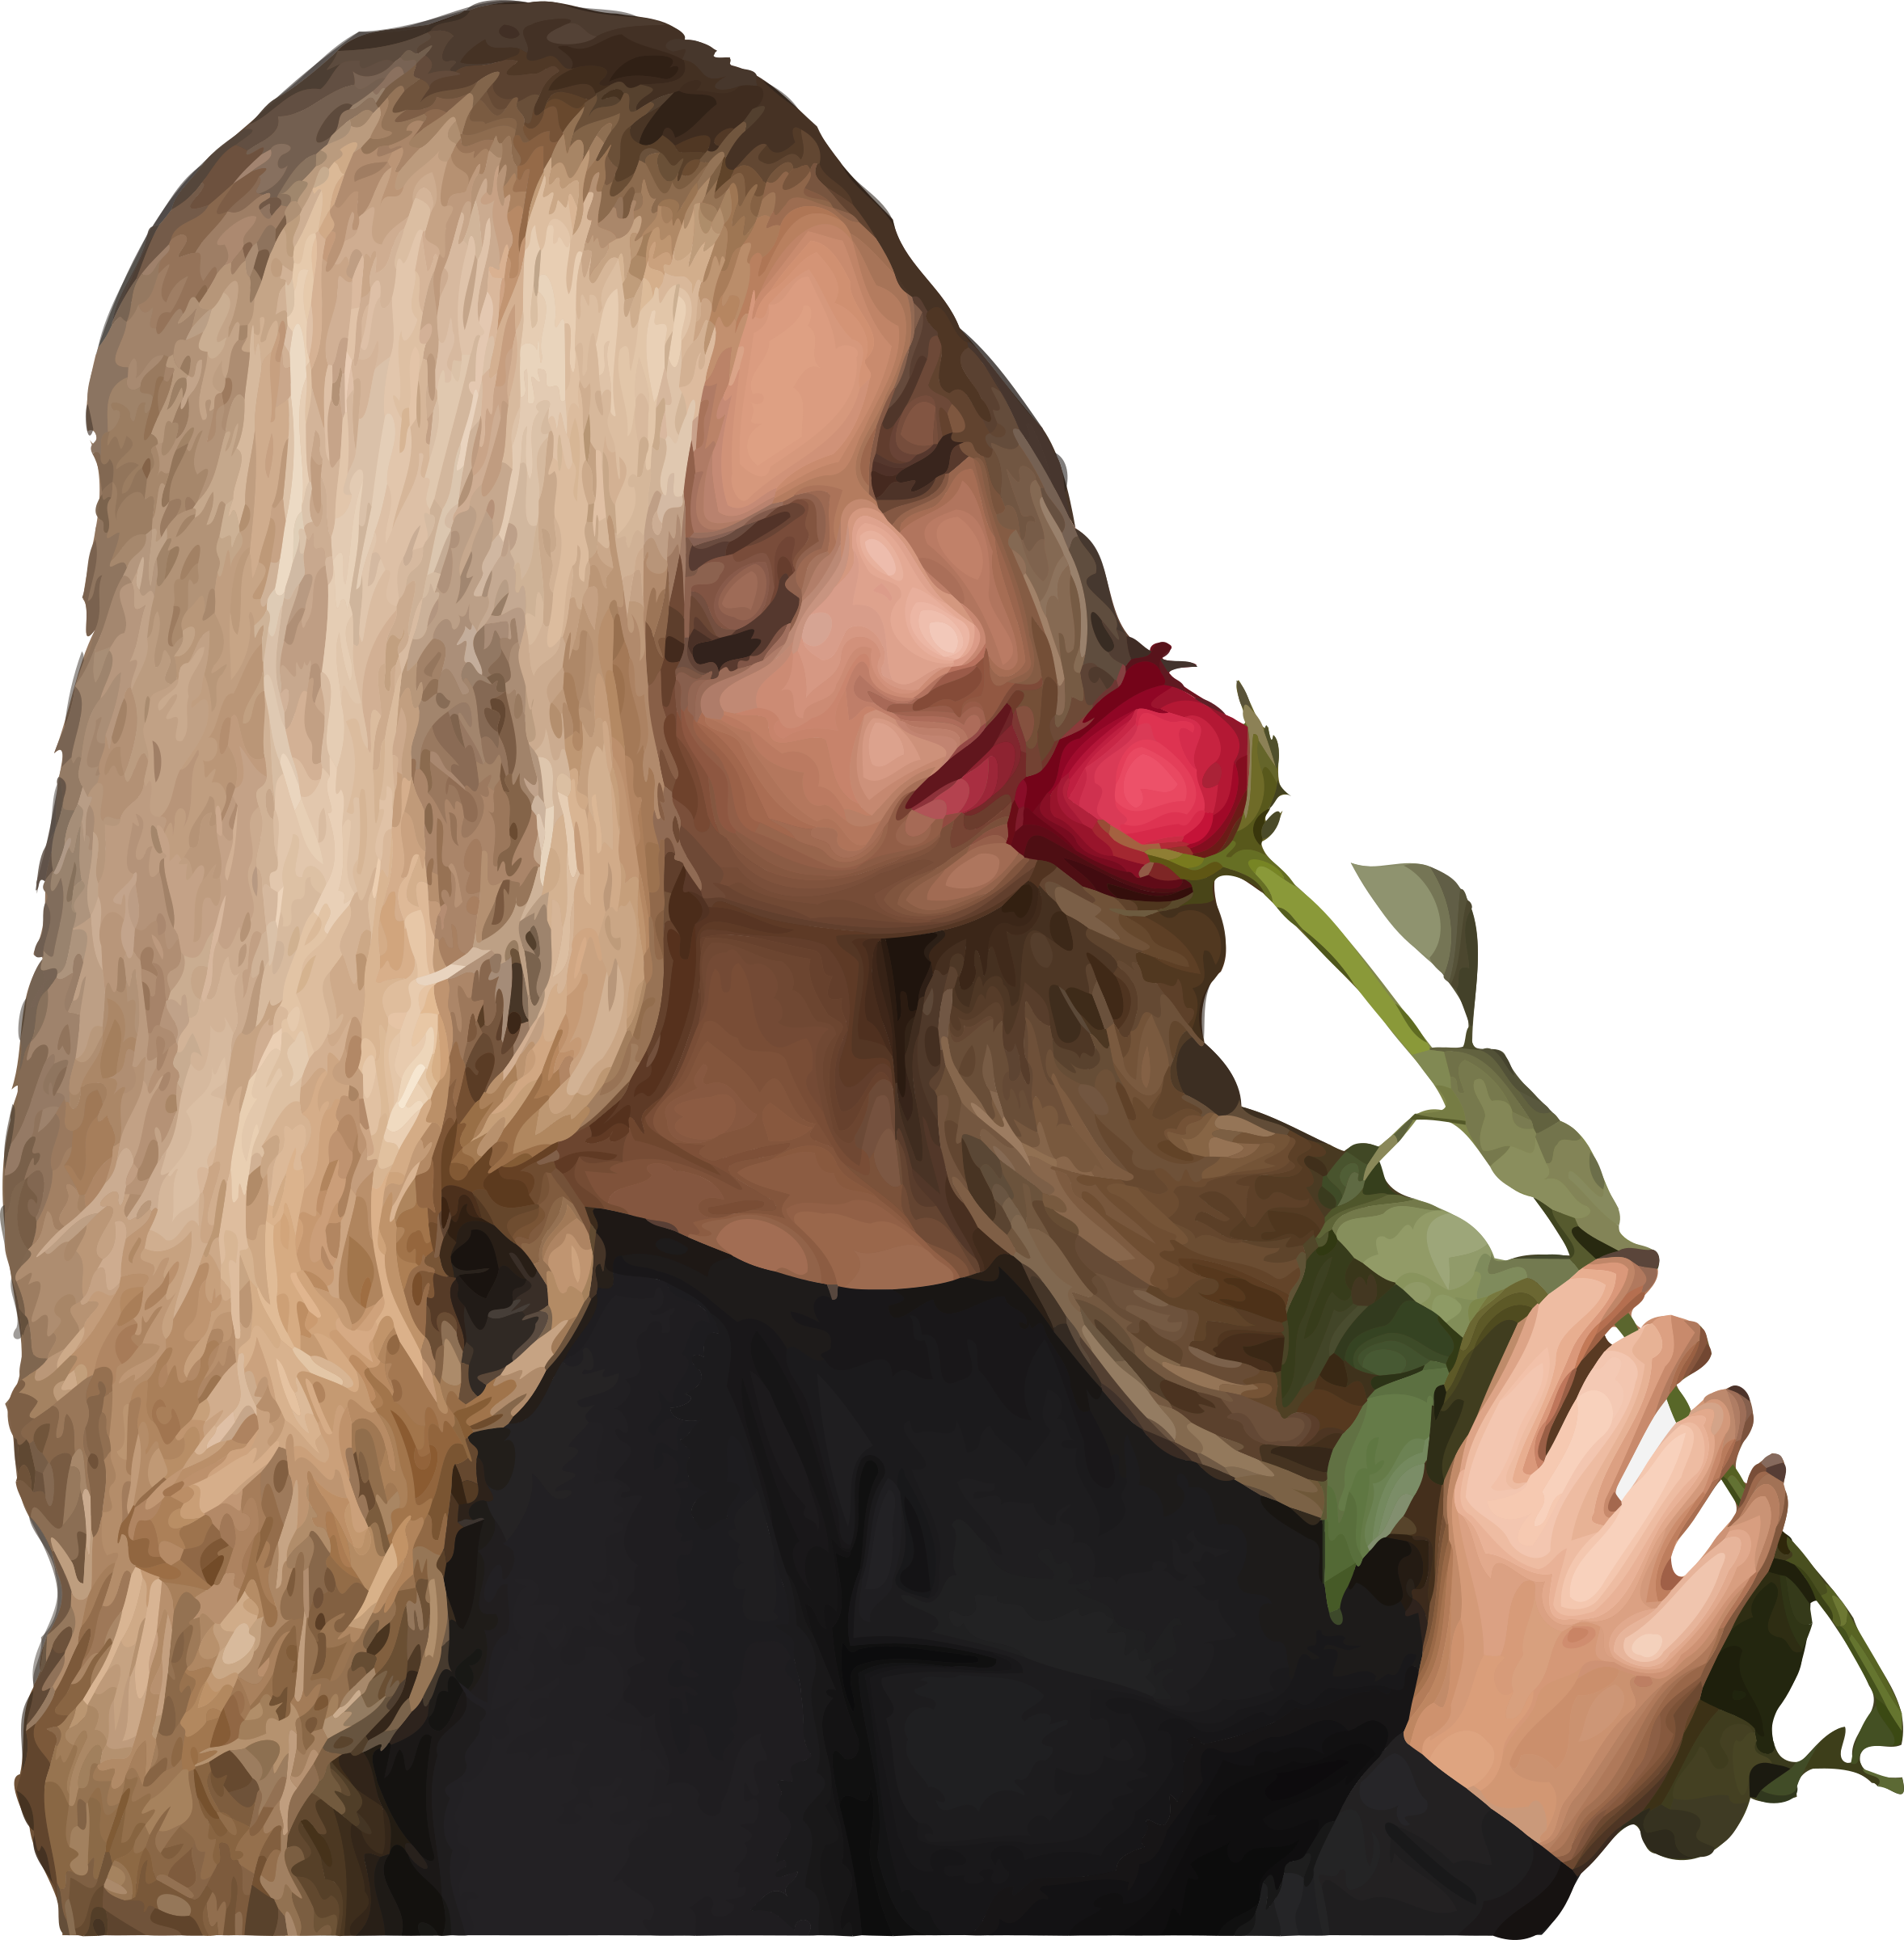 Girl with rose by Firkin